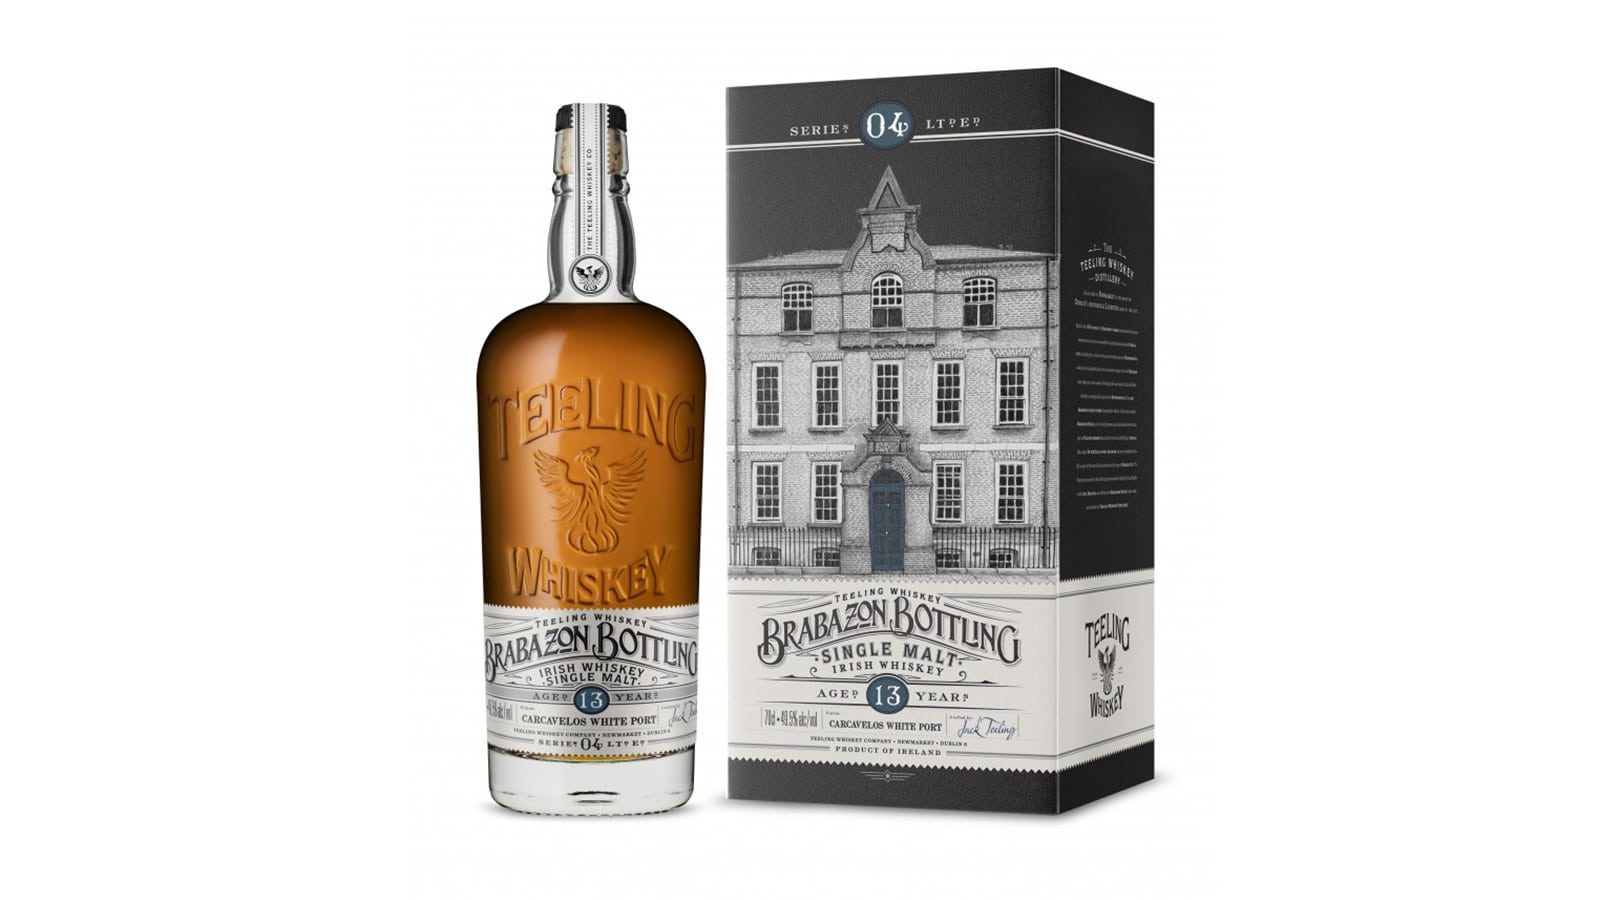 Teeling Brabazon Vol. 4